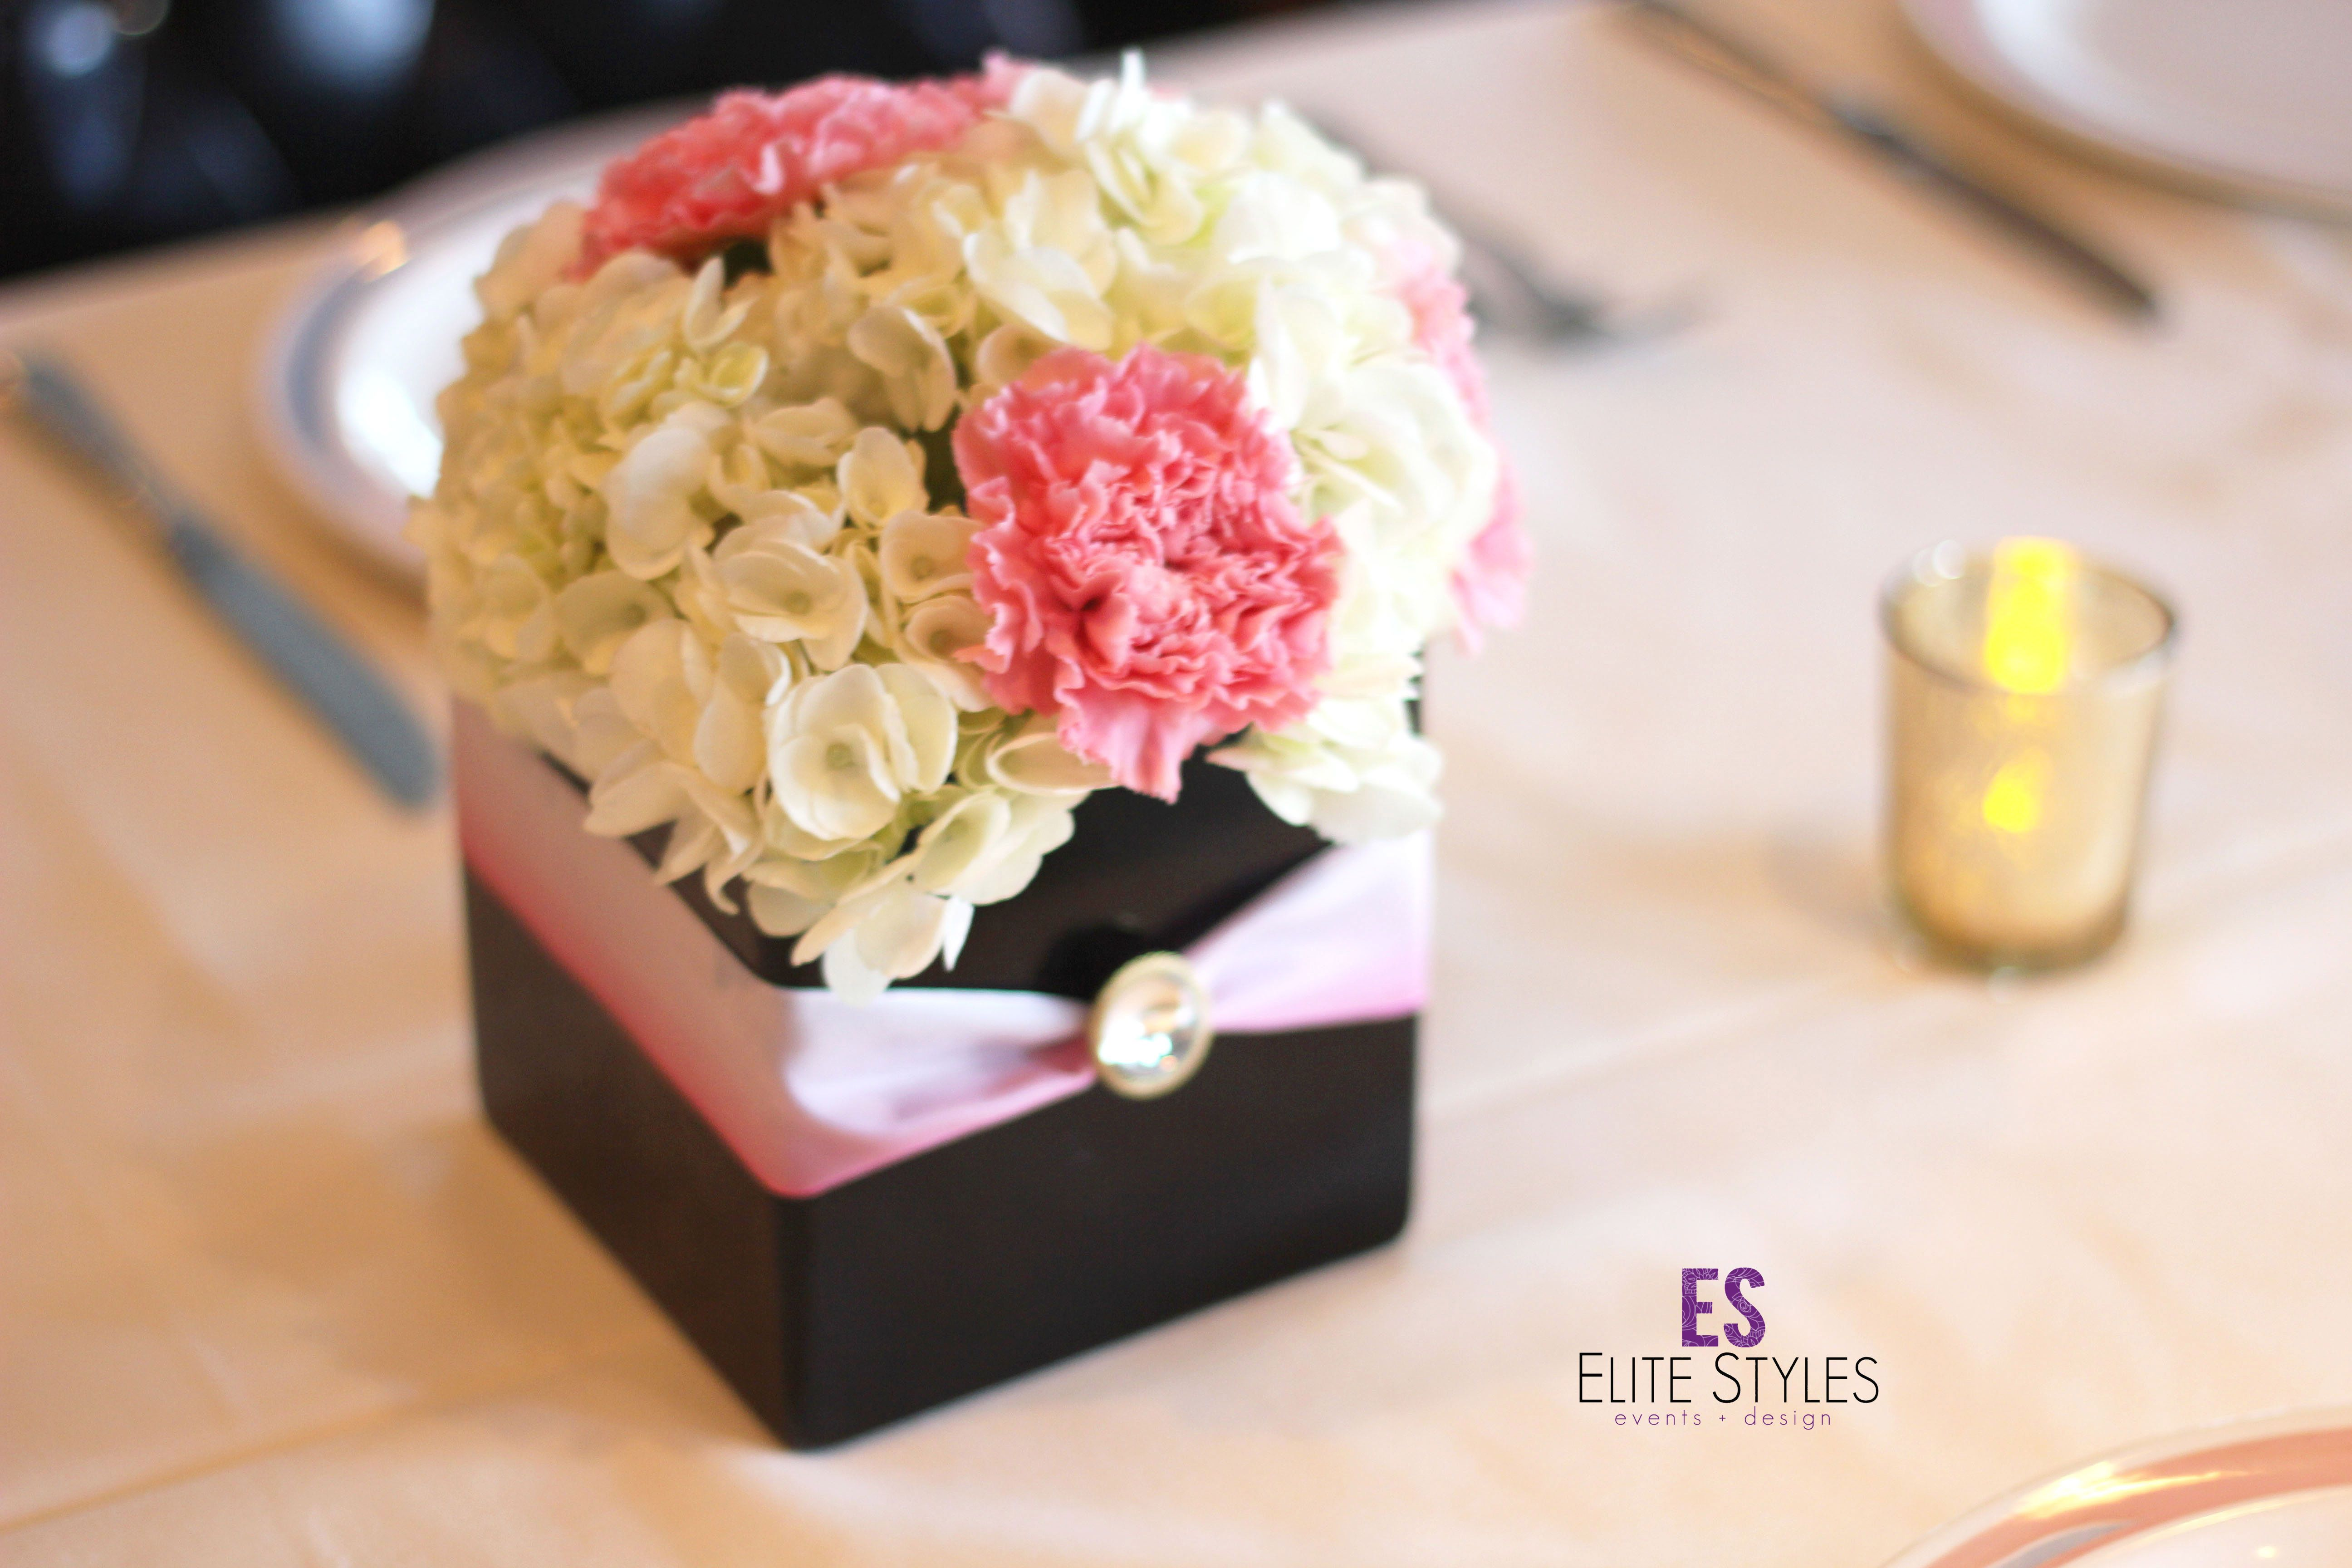 Decoration ideas for 40th wedding anniversary  Small flower centerpiece with pink ribbon around the box base